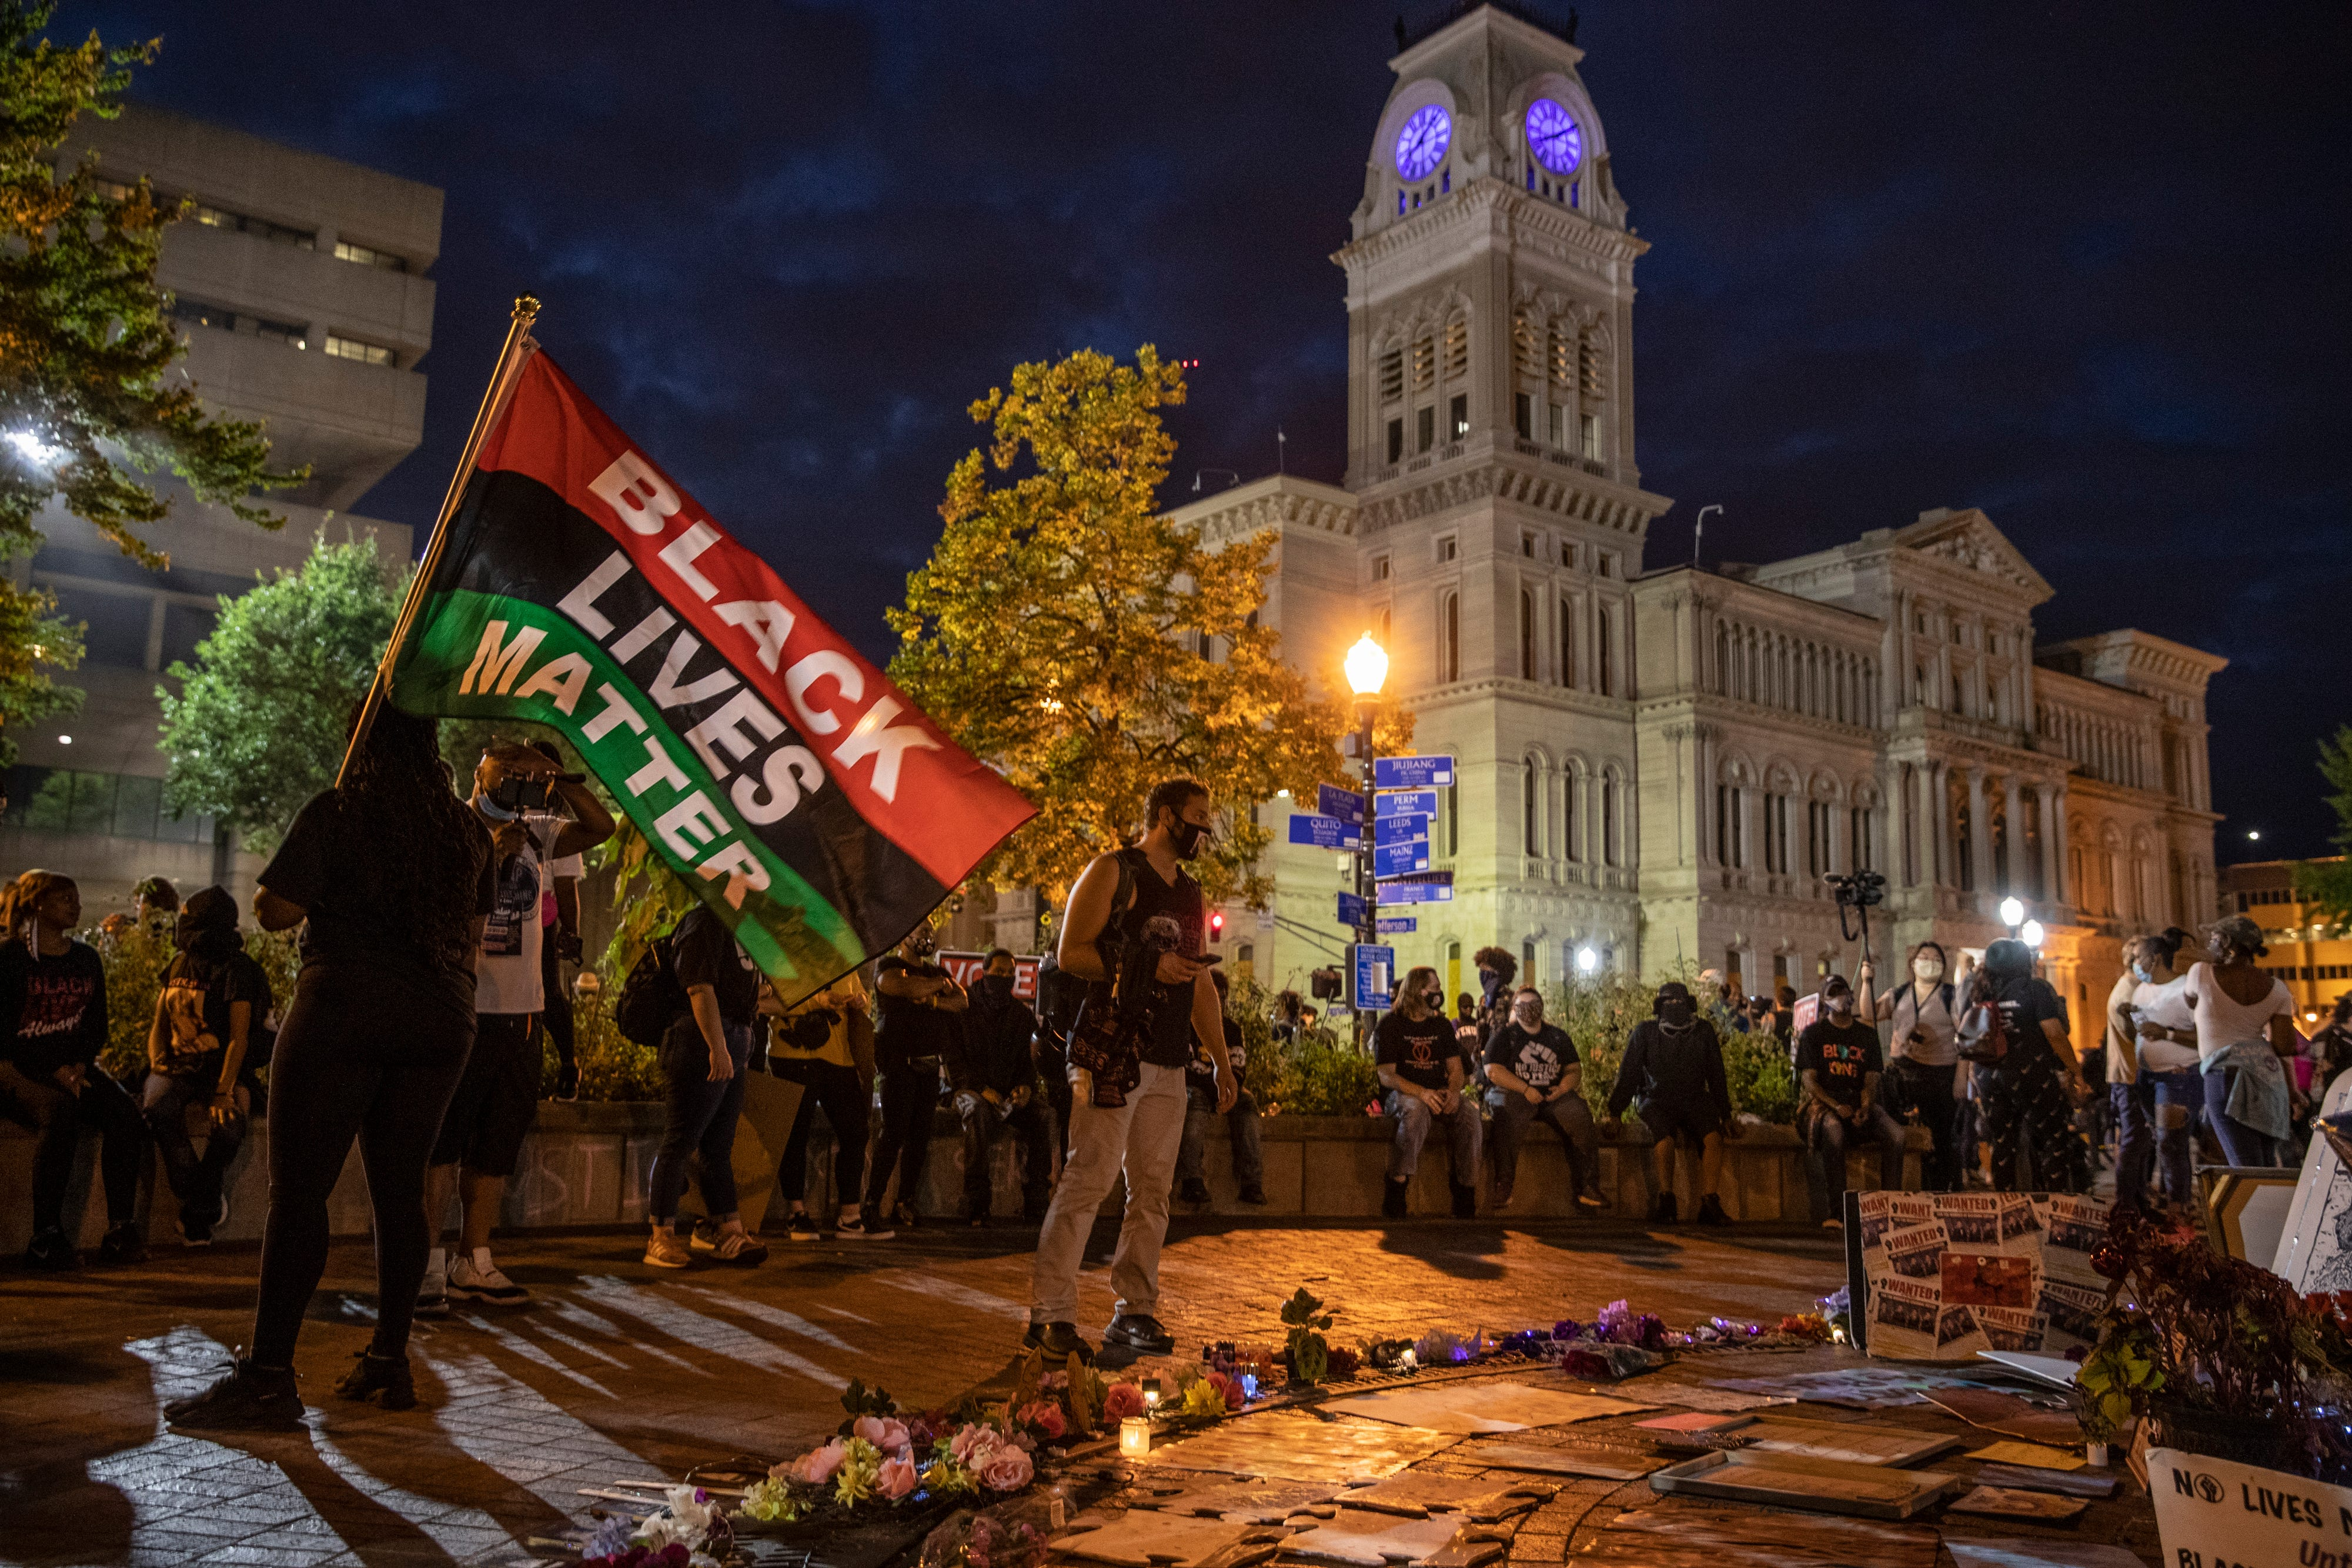 Jefferson Sqaure Park in Louisville, Kentucky, where protesters have gathered nightly for over six months to call for justice in the police shooting of Breonna Taylor. Sept. 25, 2020